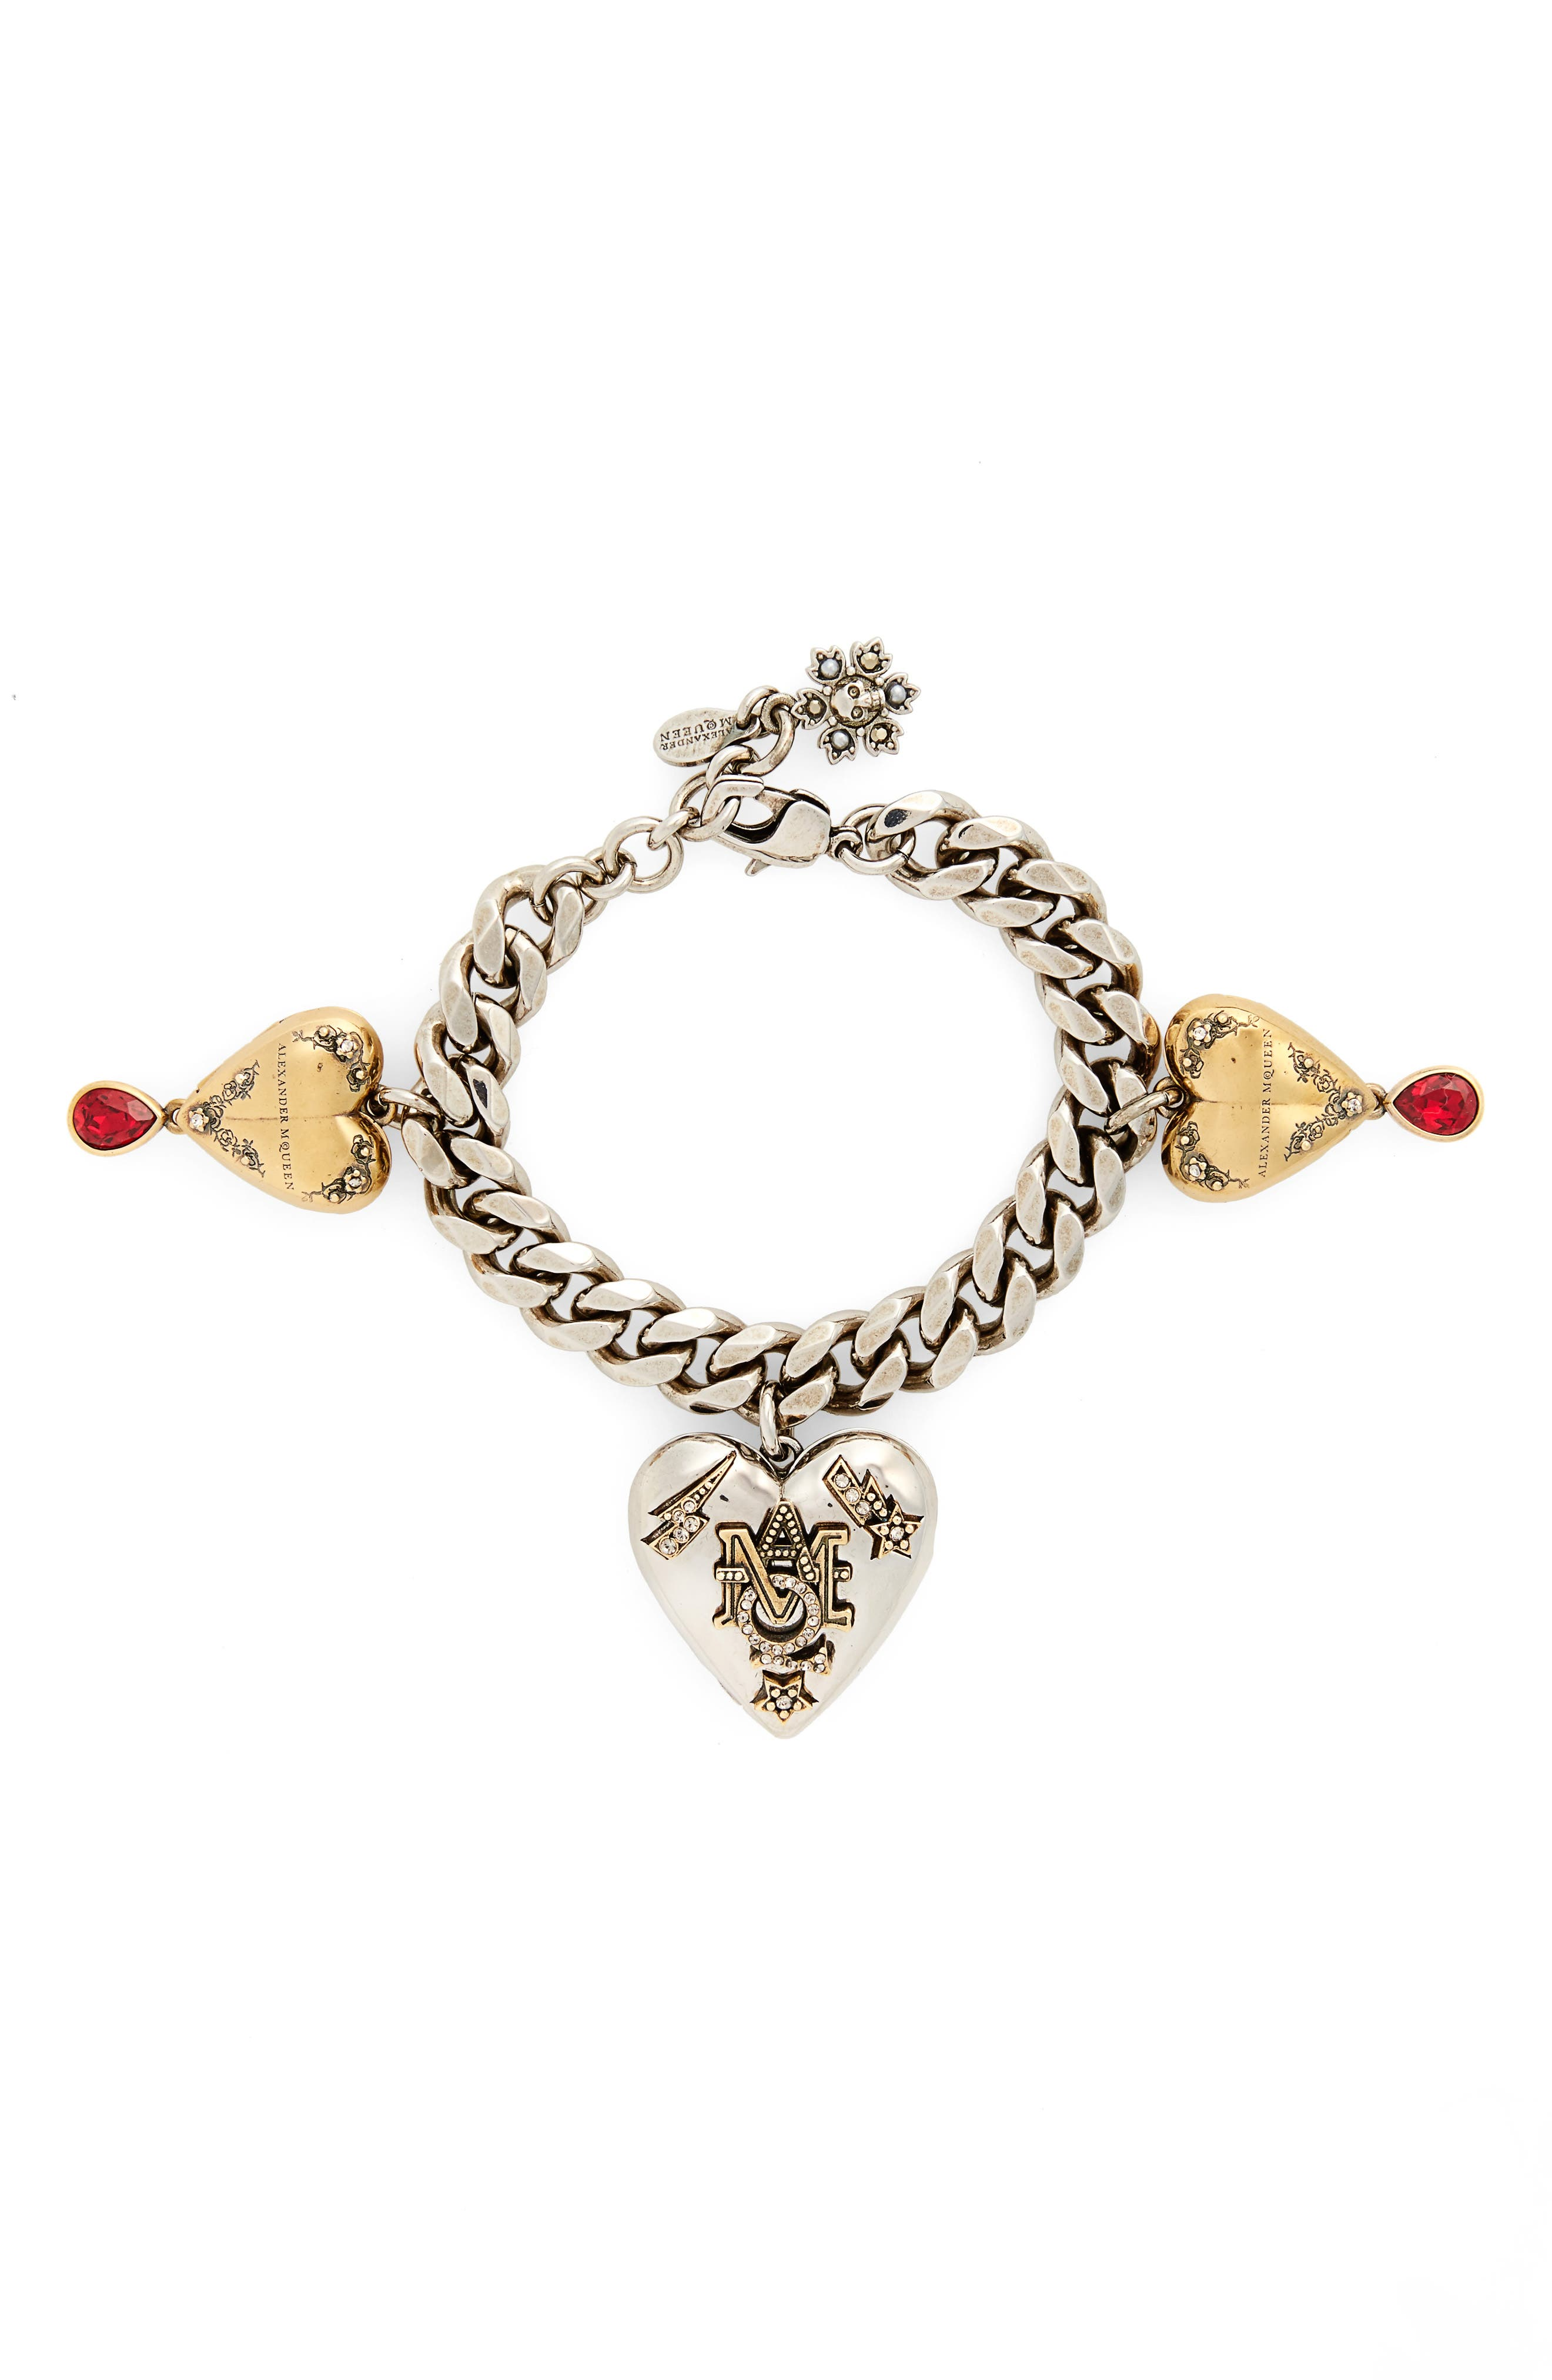 Heart Charm Bracelet,                             Main thumbnail 1, color,                             Red / Gold